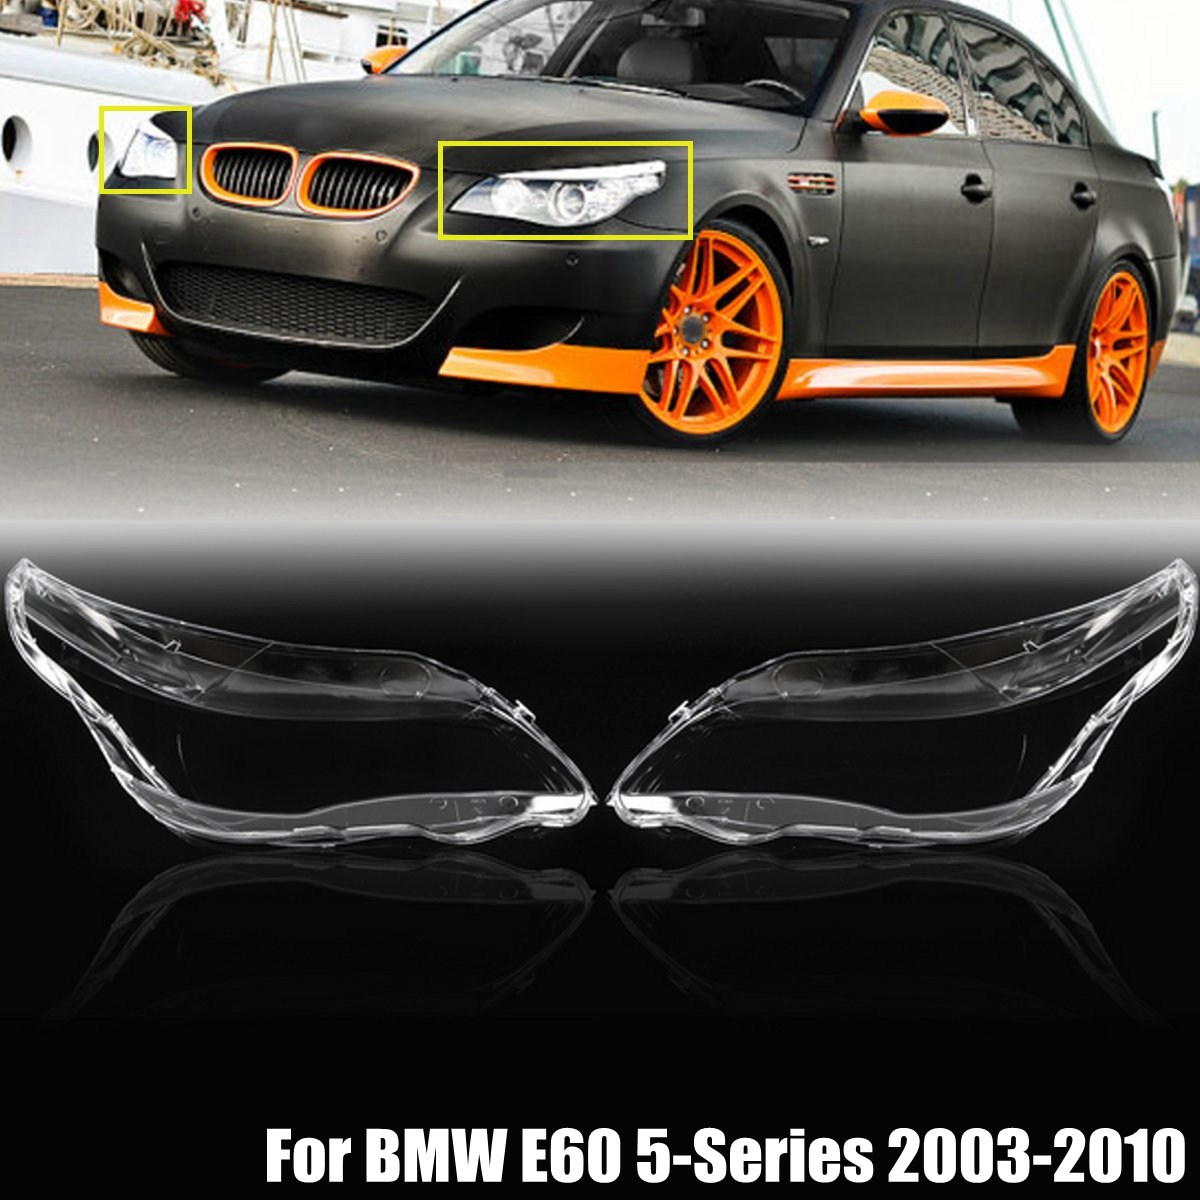 2Pcs Car Headlight Cover Headlamp Lens Covers For BMW 5-Series M5 E60 E61 525i 530i 545i 550i 2003 2004 2005 2006-2010 for bmw 5 series e60 m5 e61 car front headlamp housing clear lens shell cover for bmw 525i 530i 528i 535i 540i 550i 545i n001